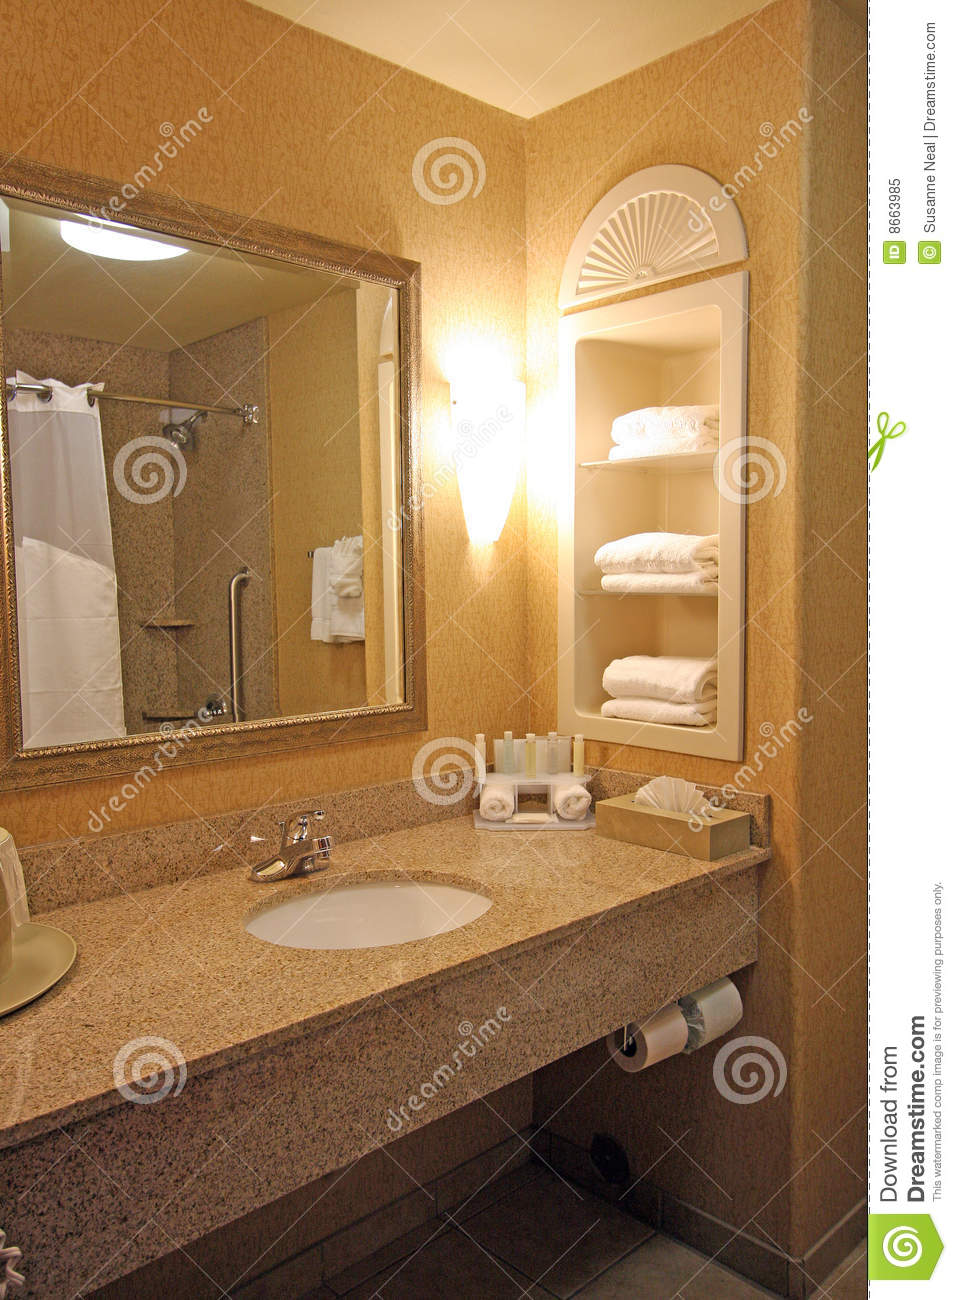 Hotel bathroom sink area stock image Image of faucet